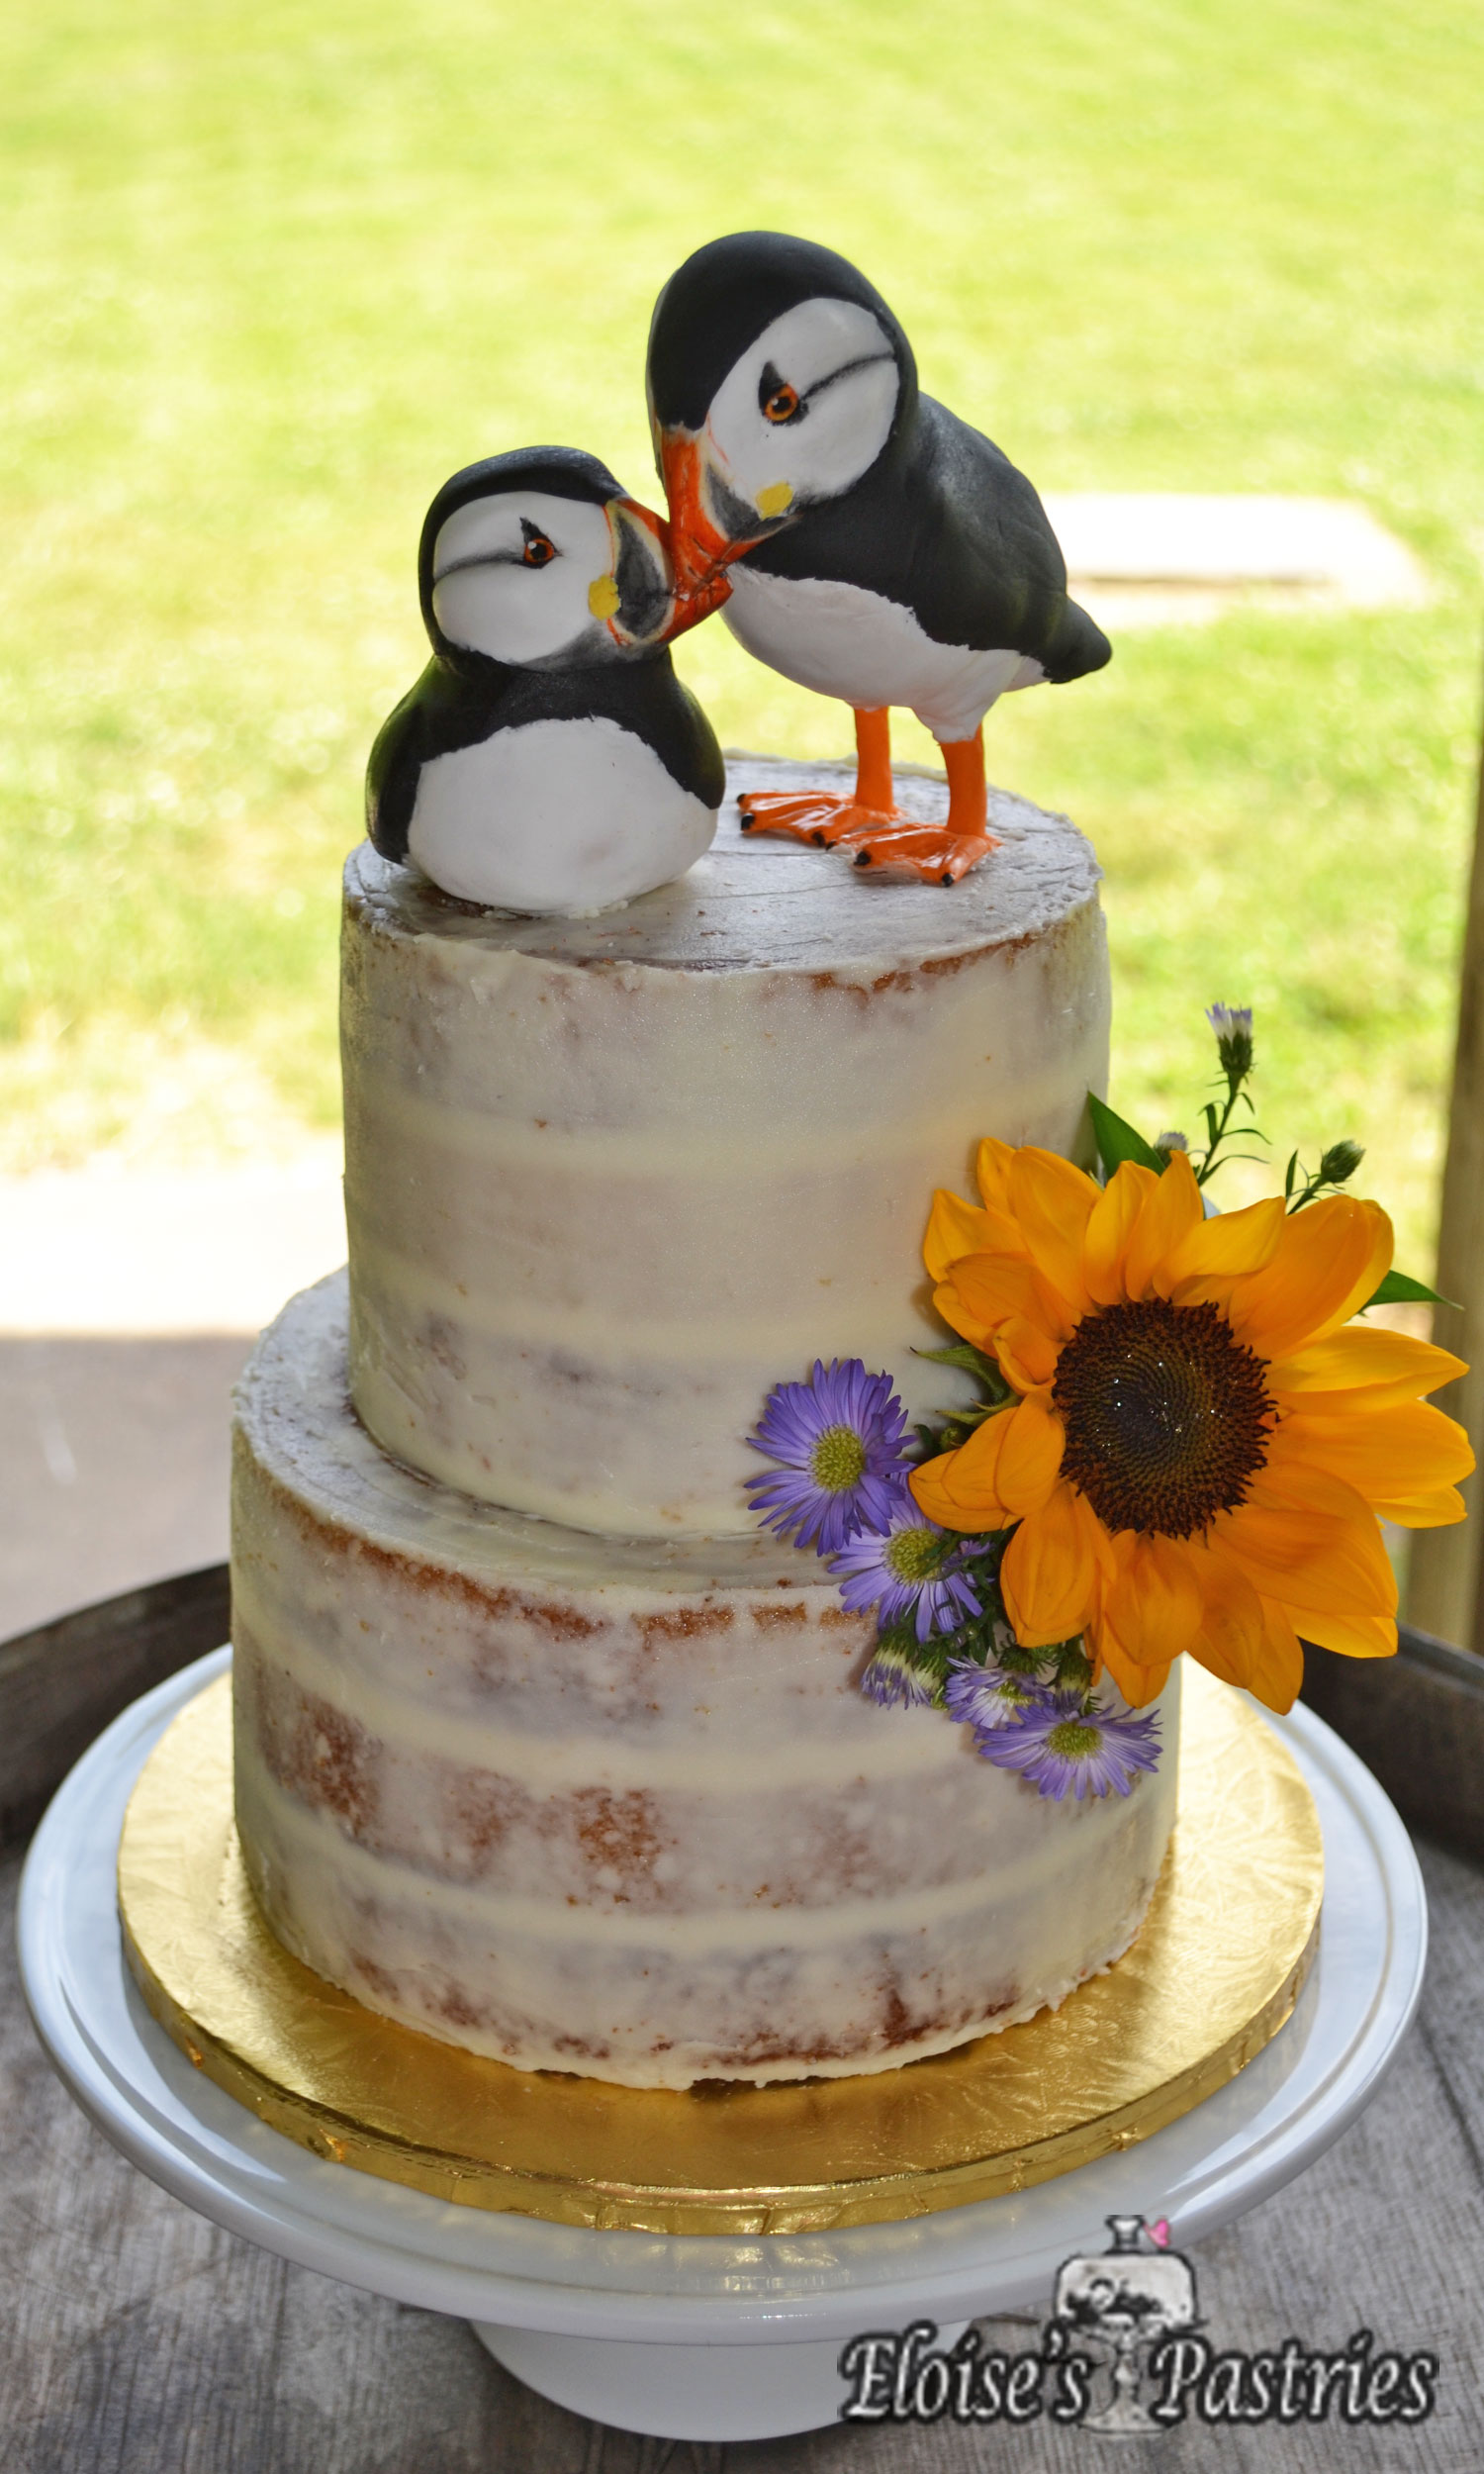 Naked Wedding Cake with Custom (edible) Puffins Topper